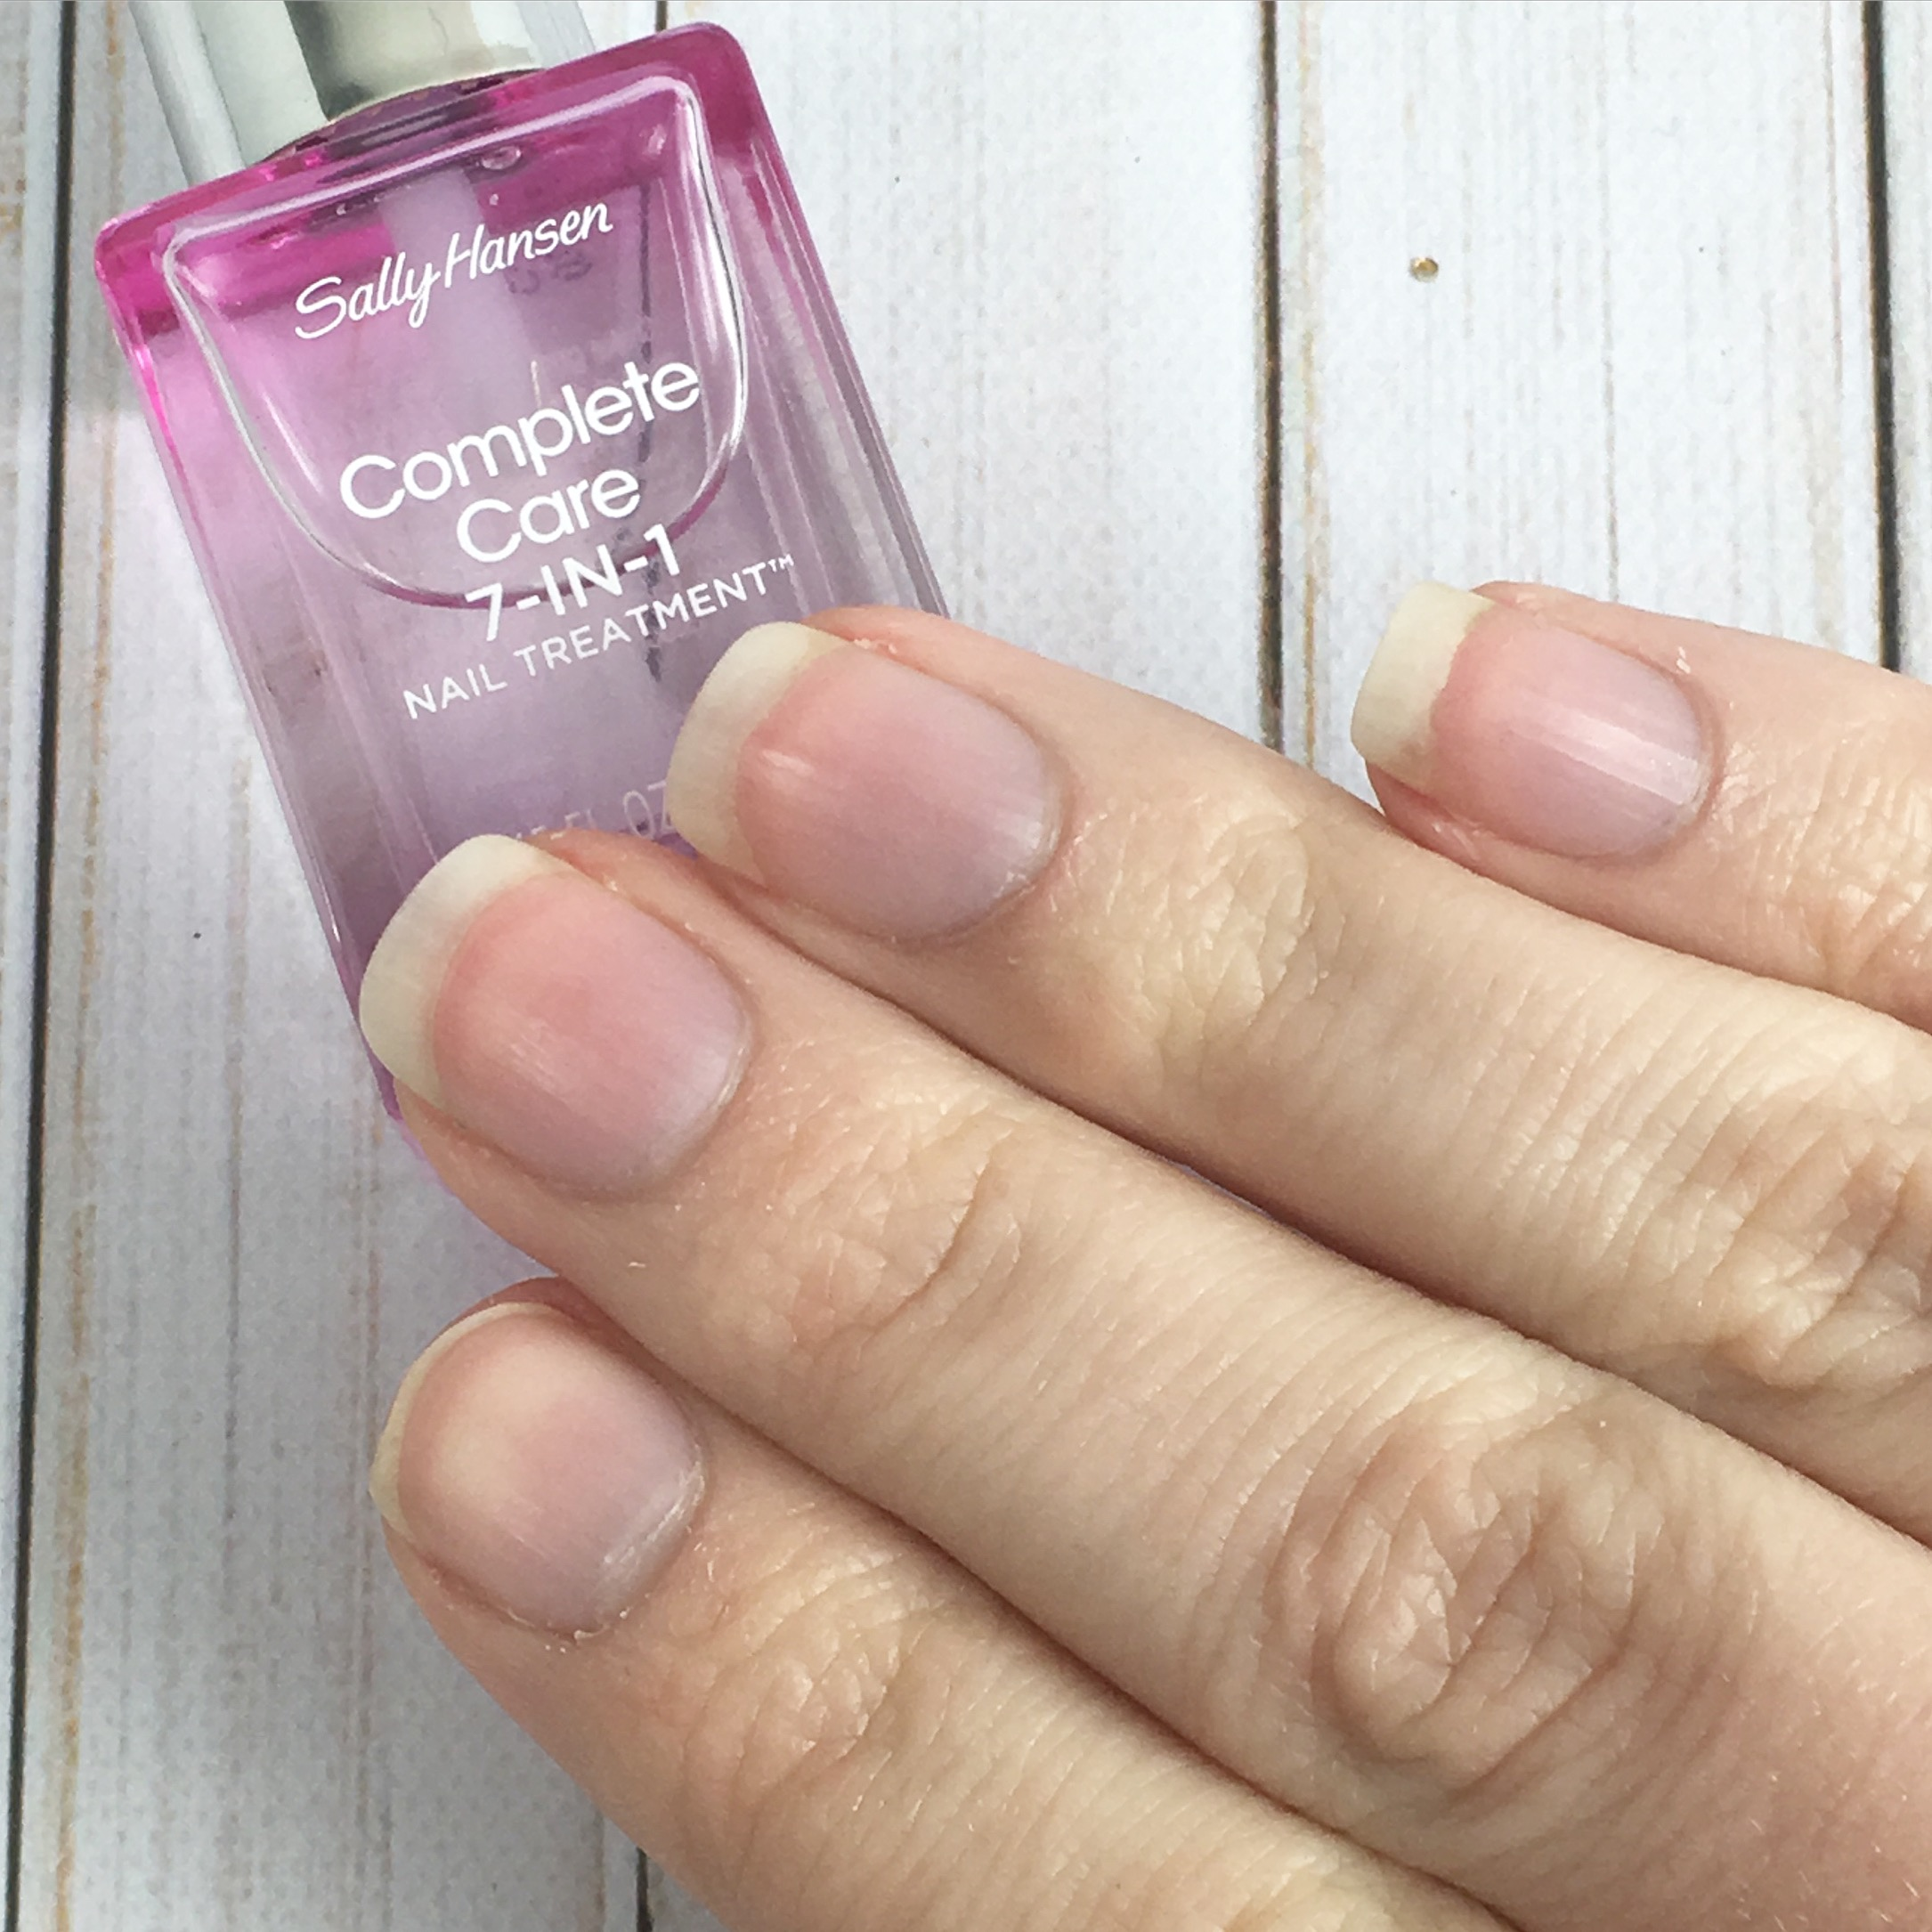 Sally Hansen Complete Care 7 in 1 Nail Treatment | Review - Love for ...